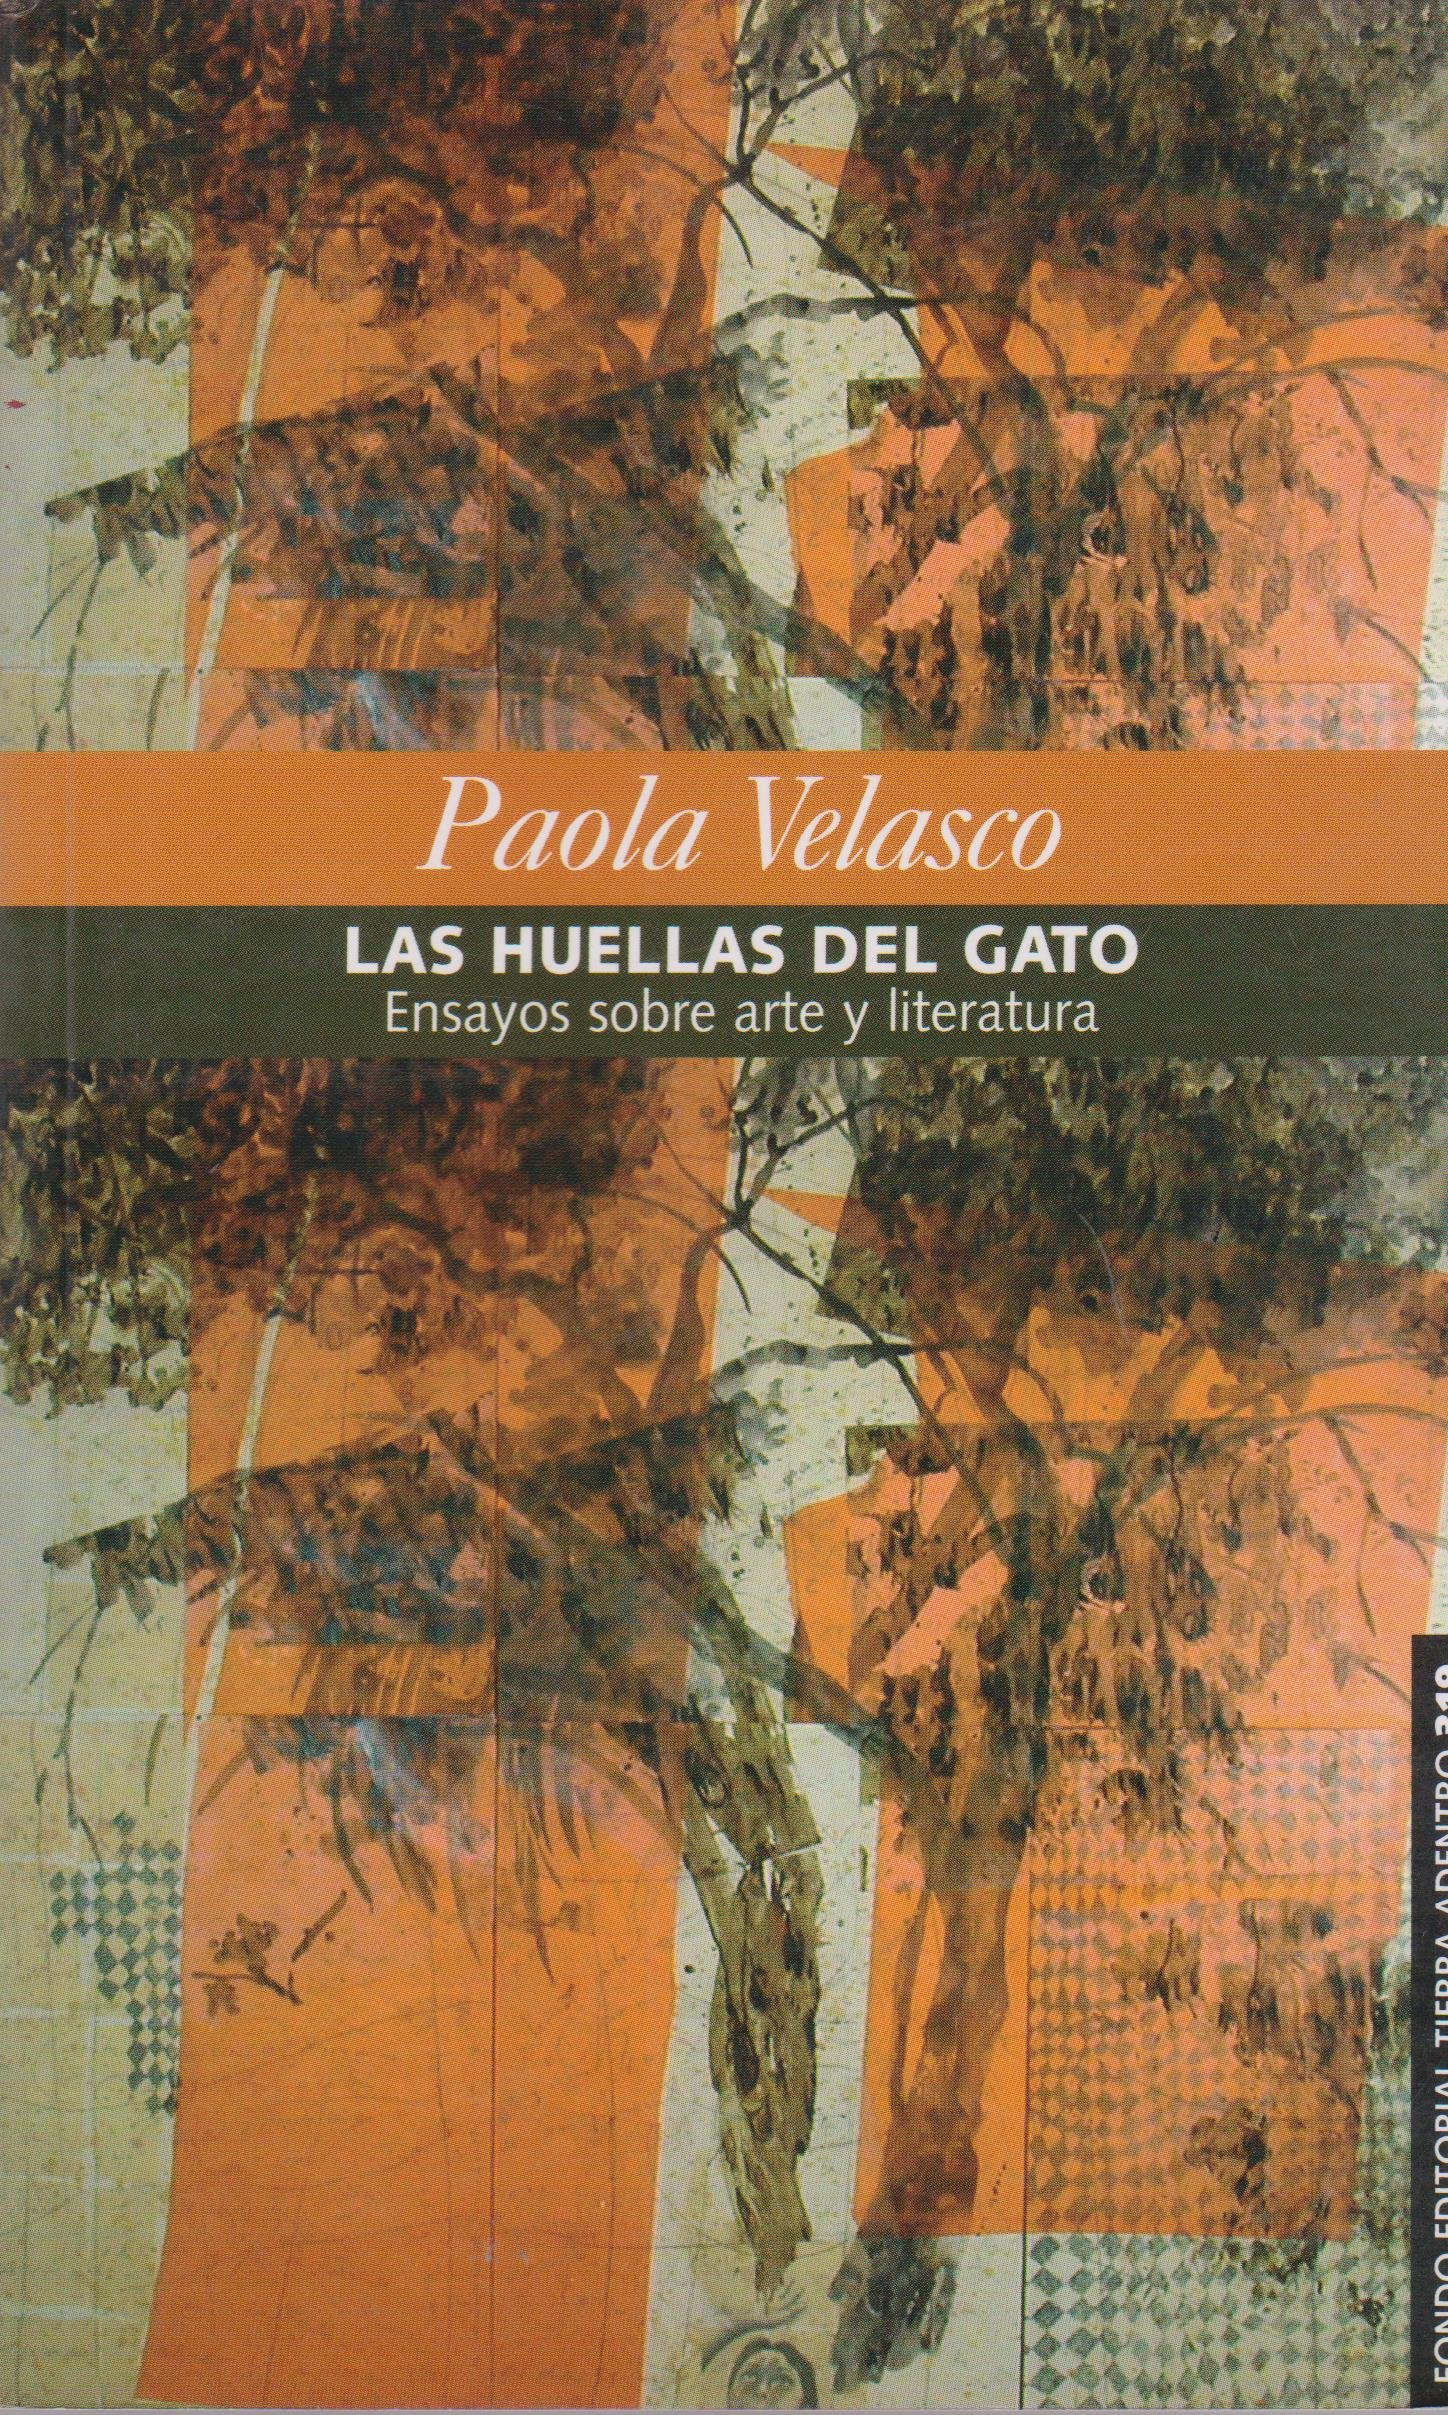 LAS HUELLAS DEL GATO (Spanish Edition): Paola Velasco: 9789703511389: Amazon.com: Books